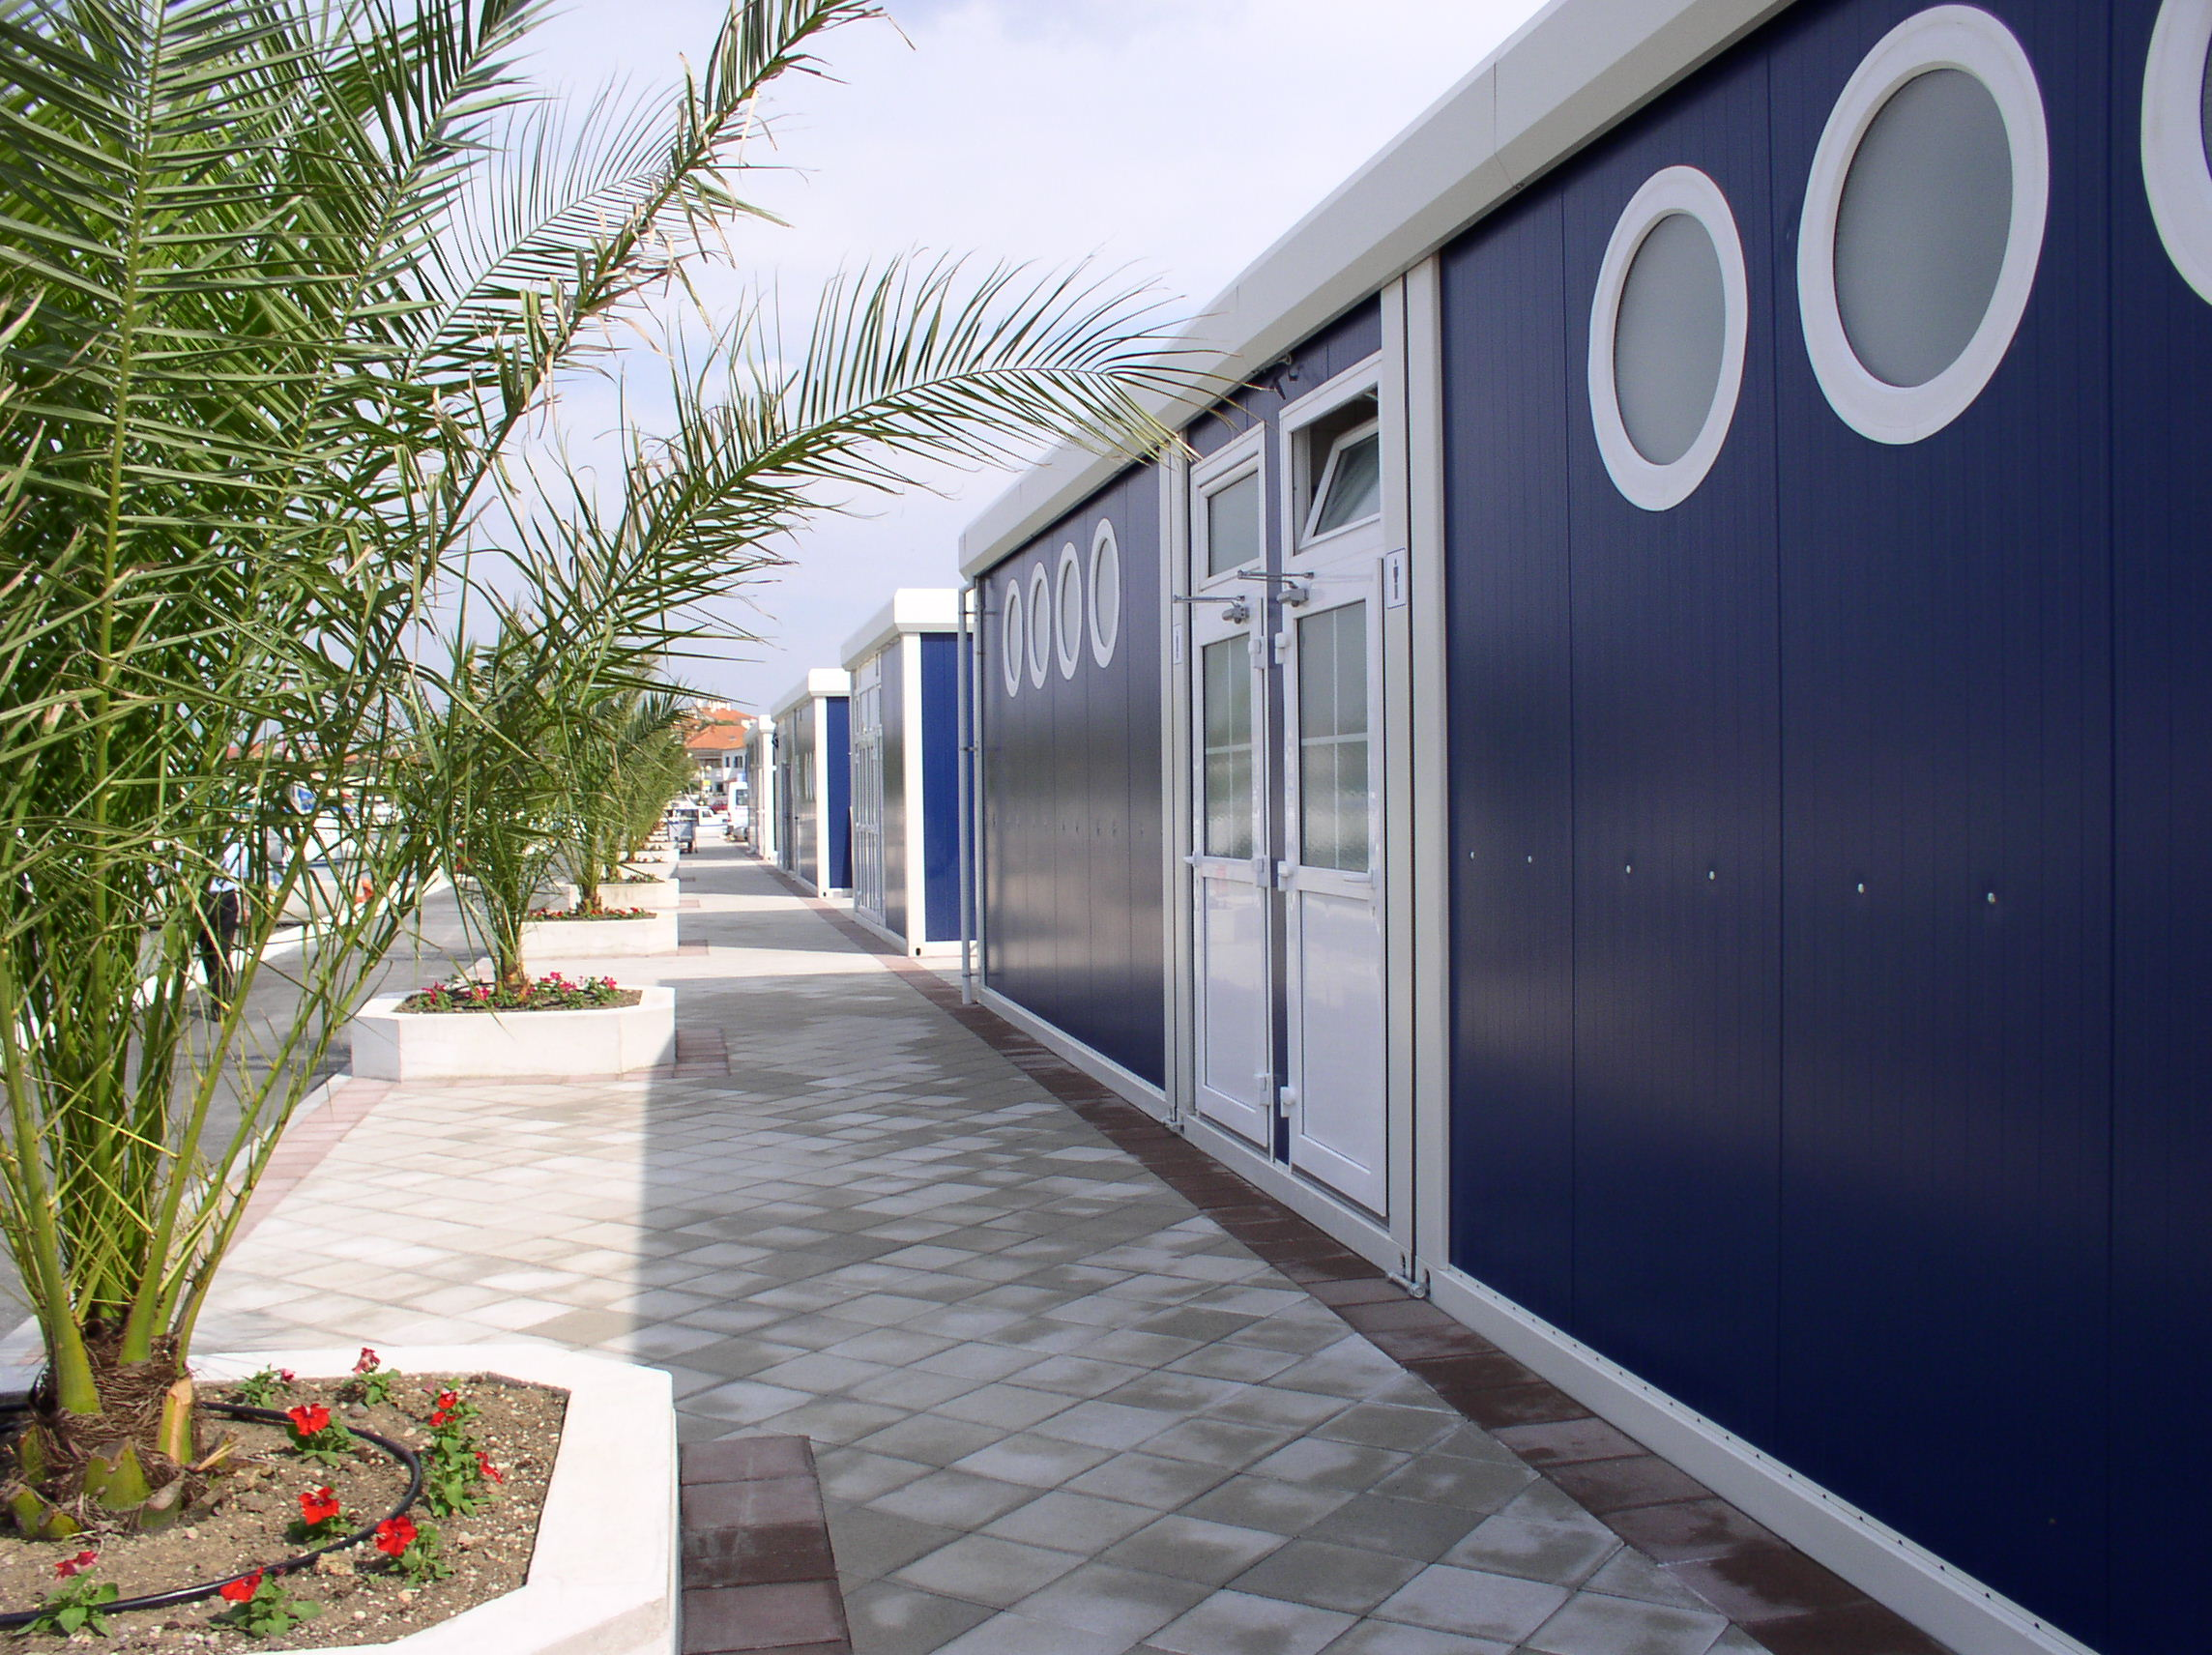 Sanitary units in camp